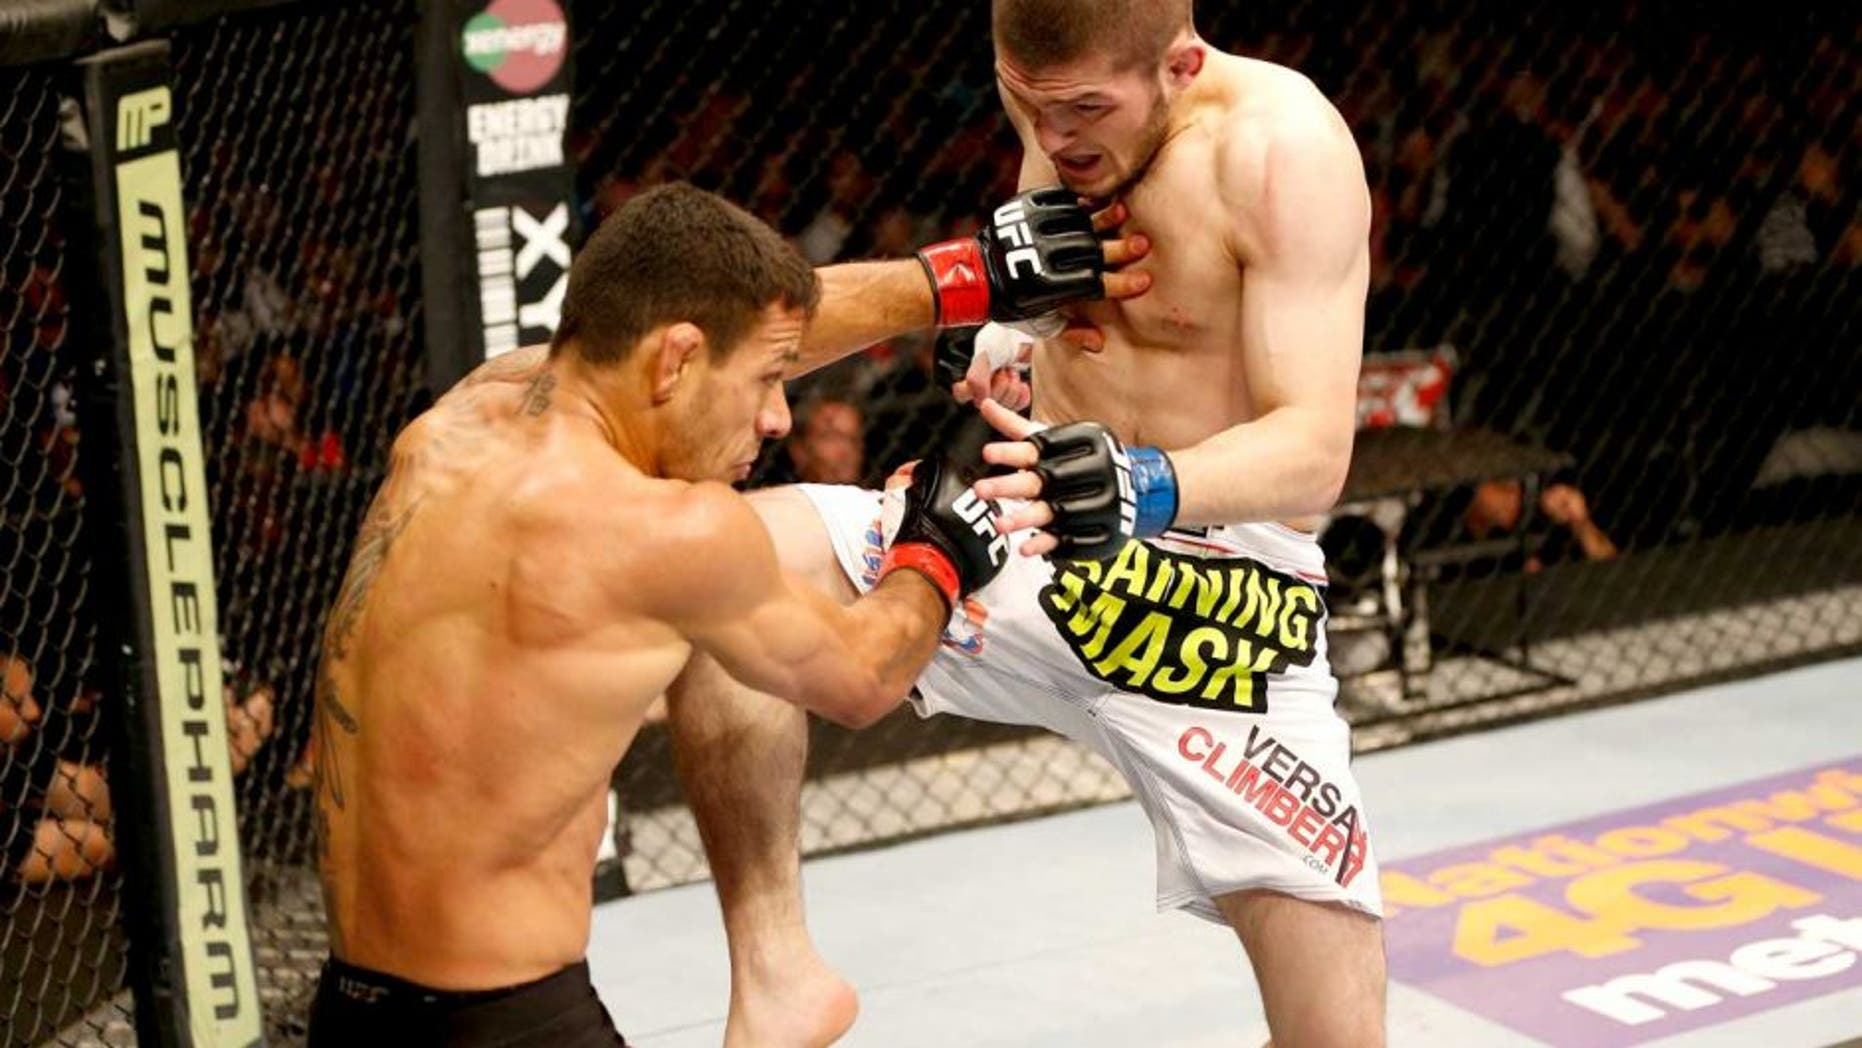 ORLANDO, FL - APRIL 19: (R-L) Khabib Nurmagomedov lands a flying knee against Rafael dos Anjos in their lightweight bout during the FOX UFC Saturday event at the Amway Center on April 19, 2014 in Orlando, Florida. (Photo by Josh Hedges/Zuffa LLC/Zuffa LLC via Getty Images)